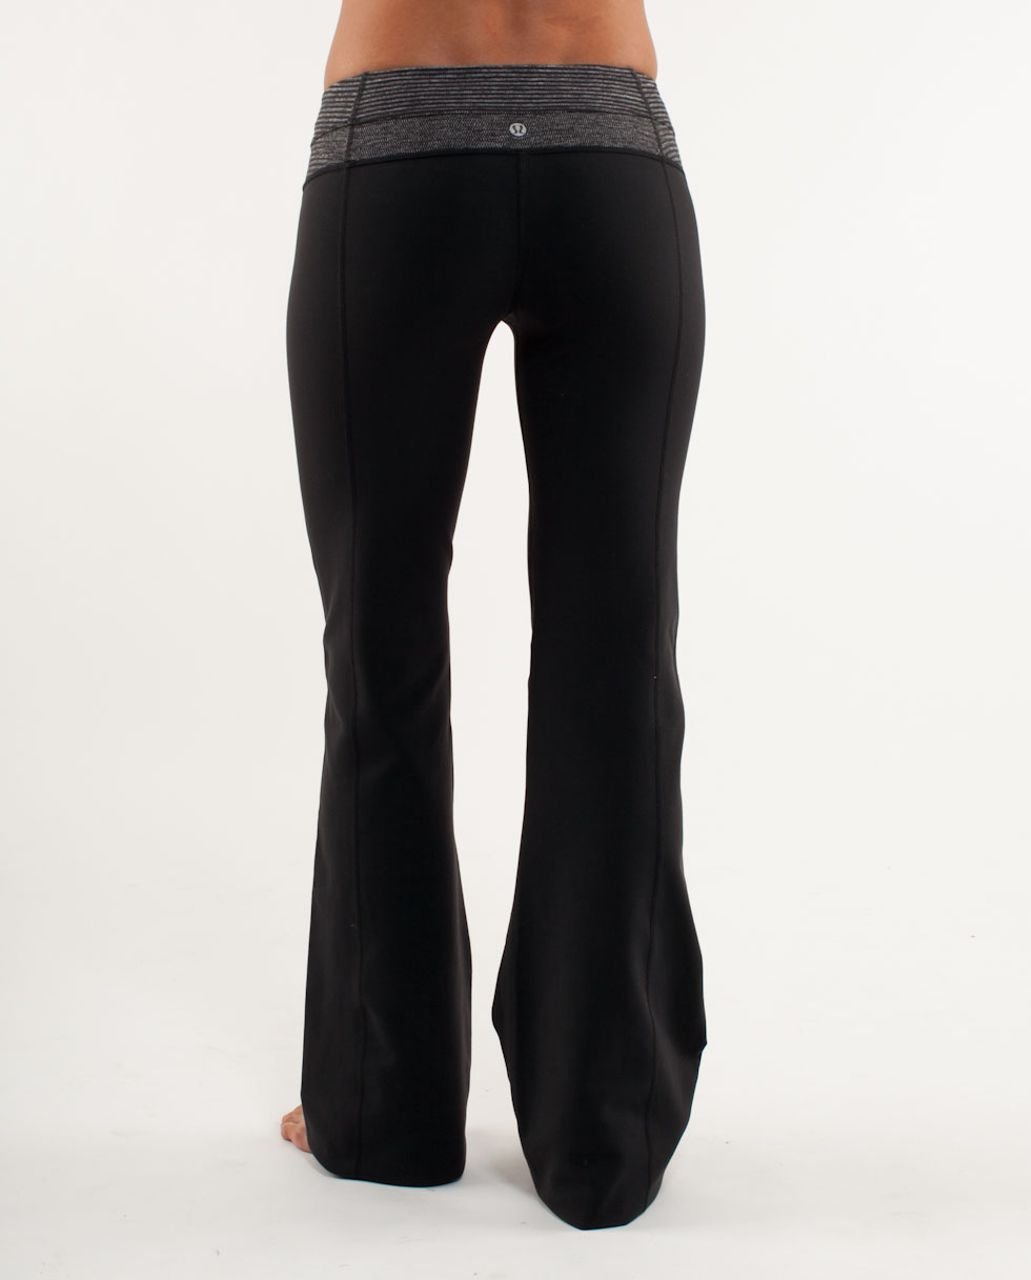 Lululemon Groove Pant (Regular) - Black /  Black Heathered Coal Mini Check